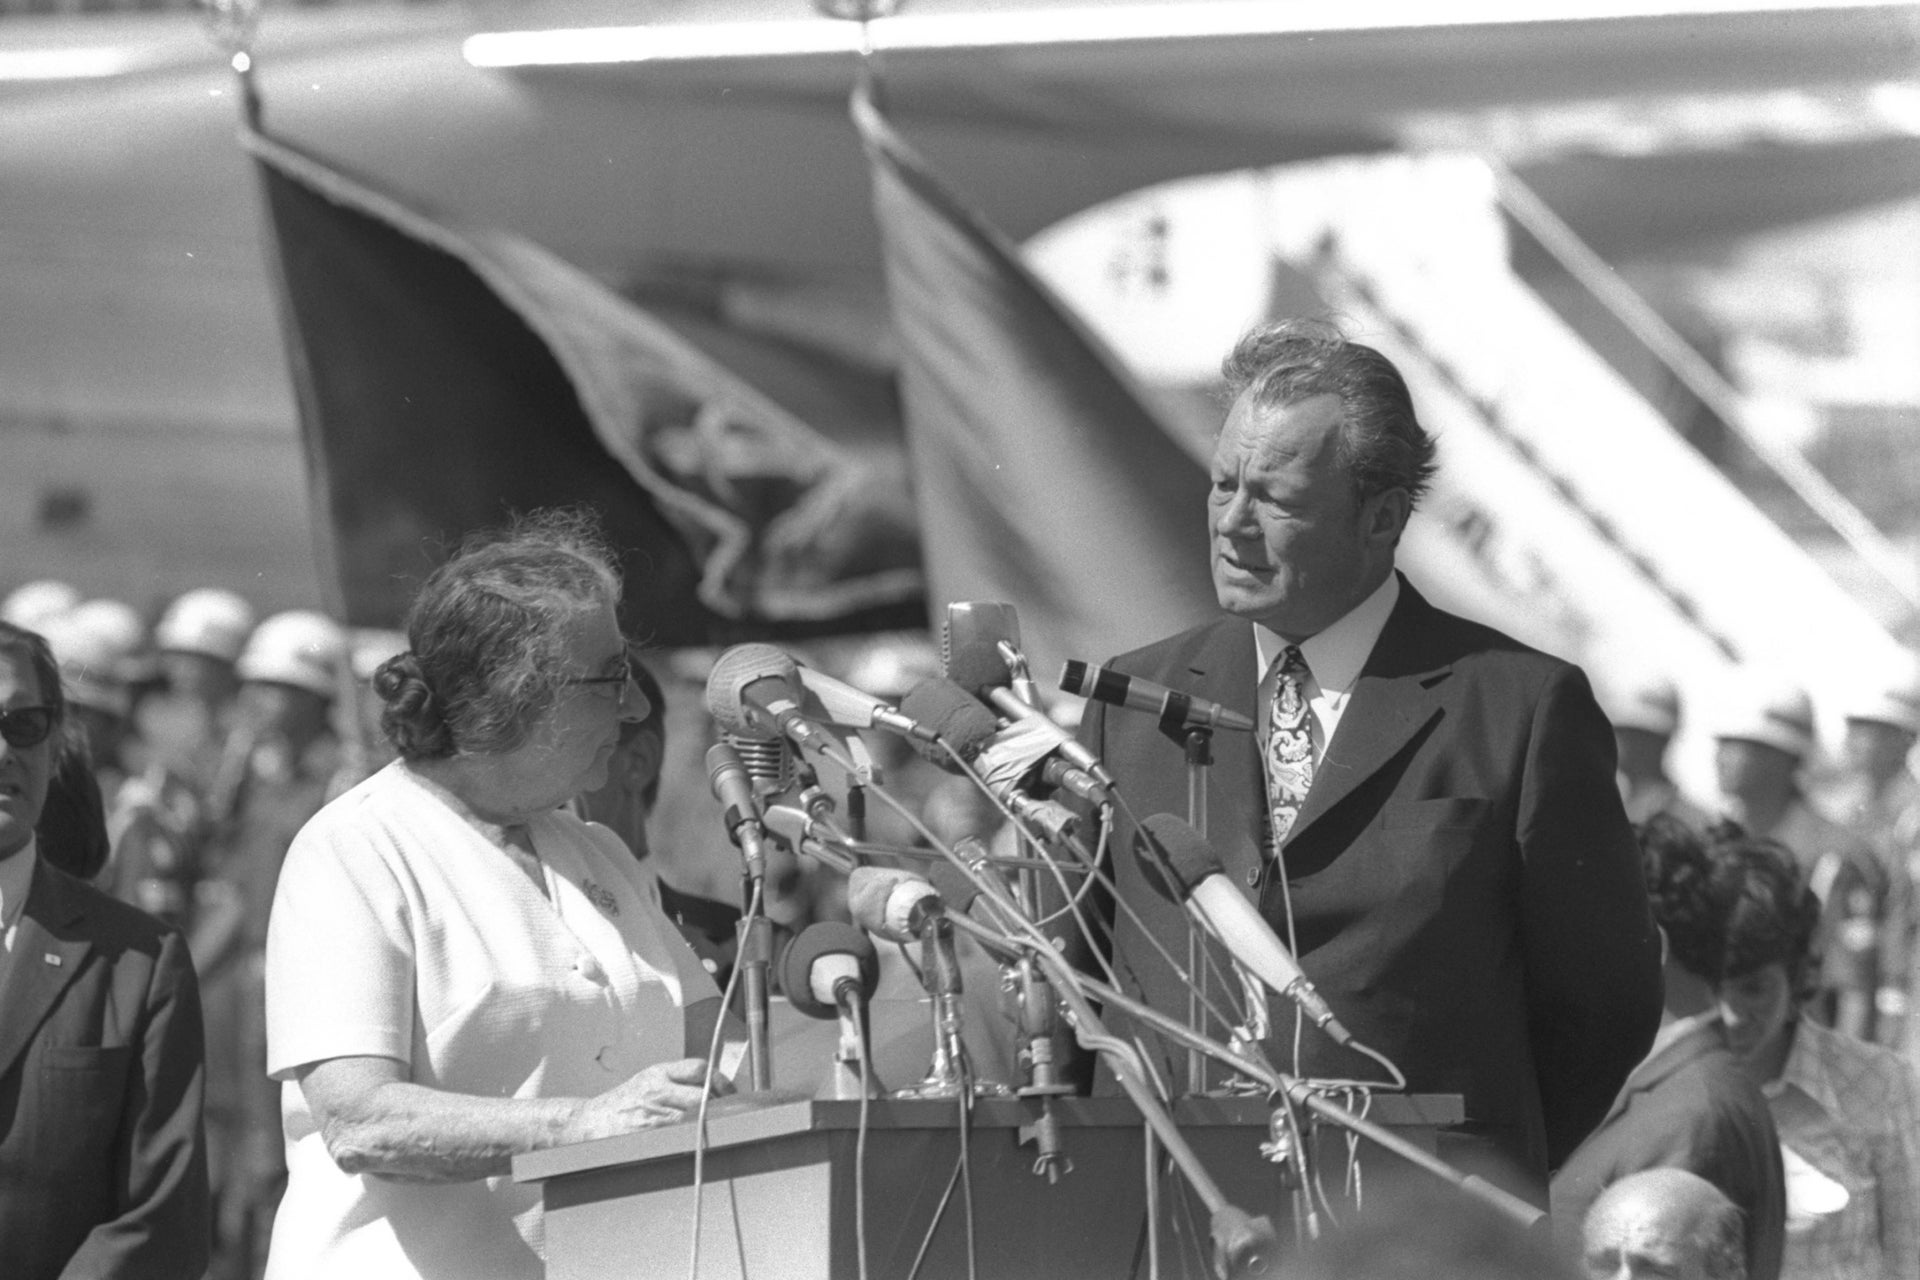 Willy Brandt visits Israel and meets with then Prime Minister Golda Meir